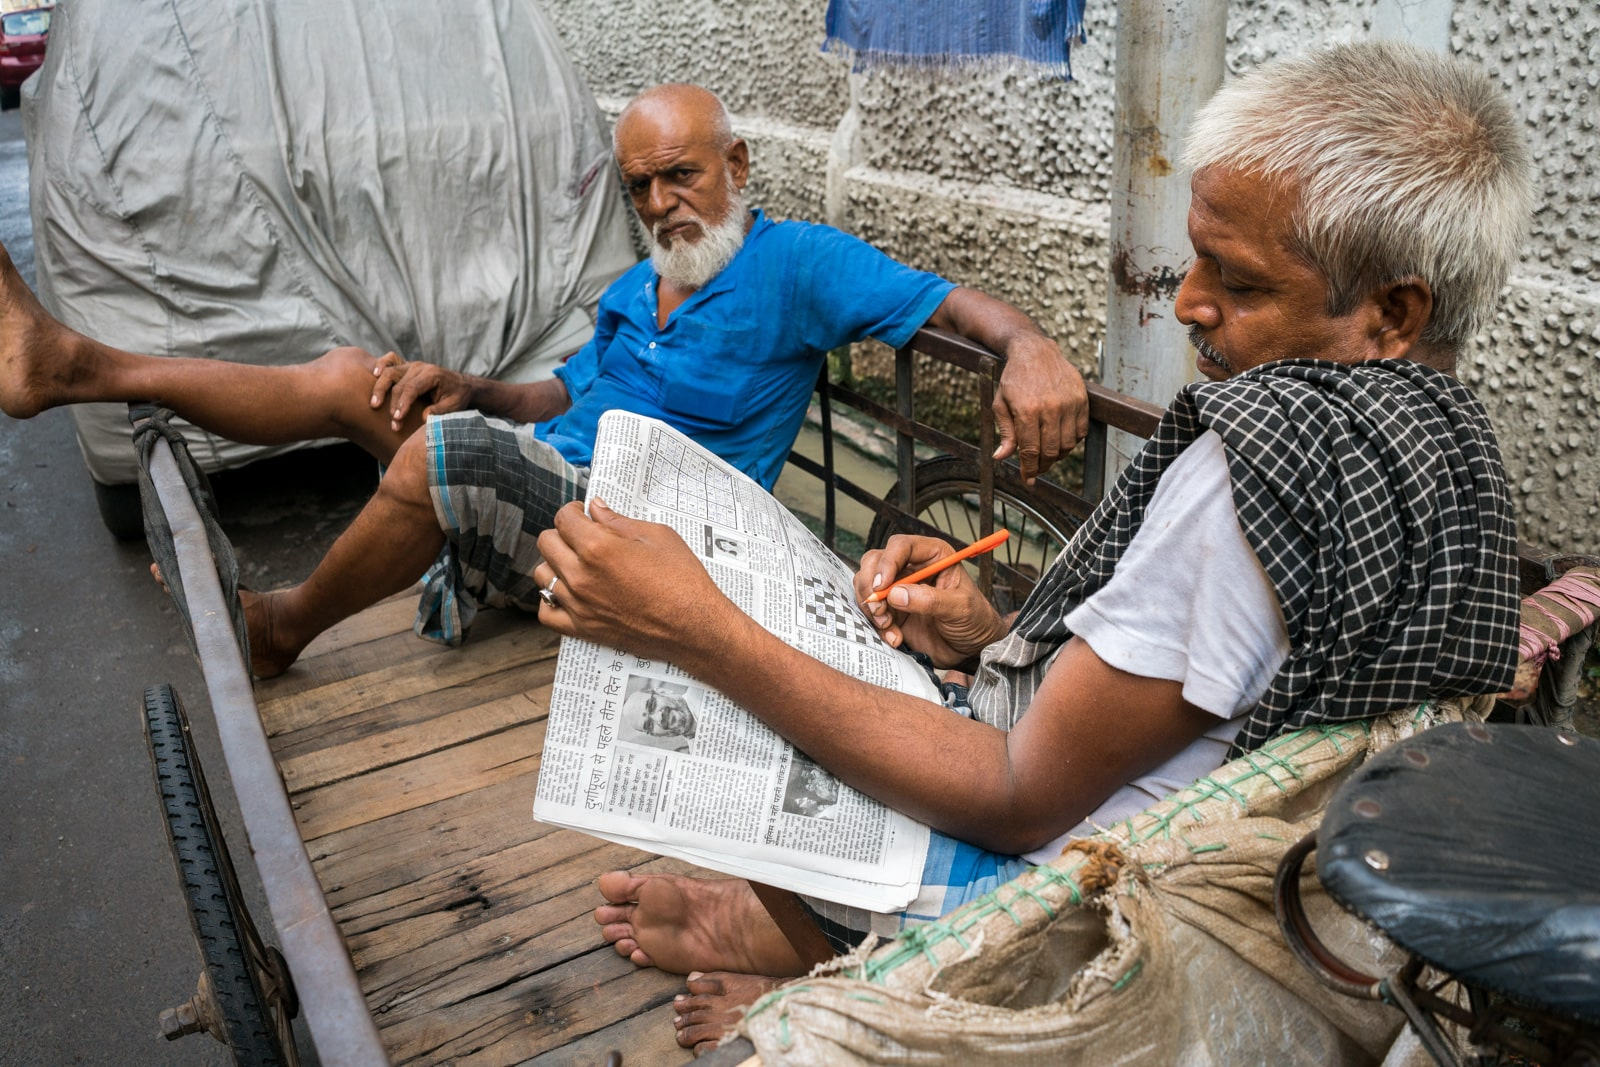 Reasons Kolkata is my favorite Indian megacity - Cart pullers doing crossword puzzles - Lost With Purpose travel blog